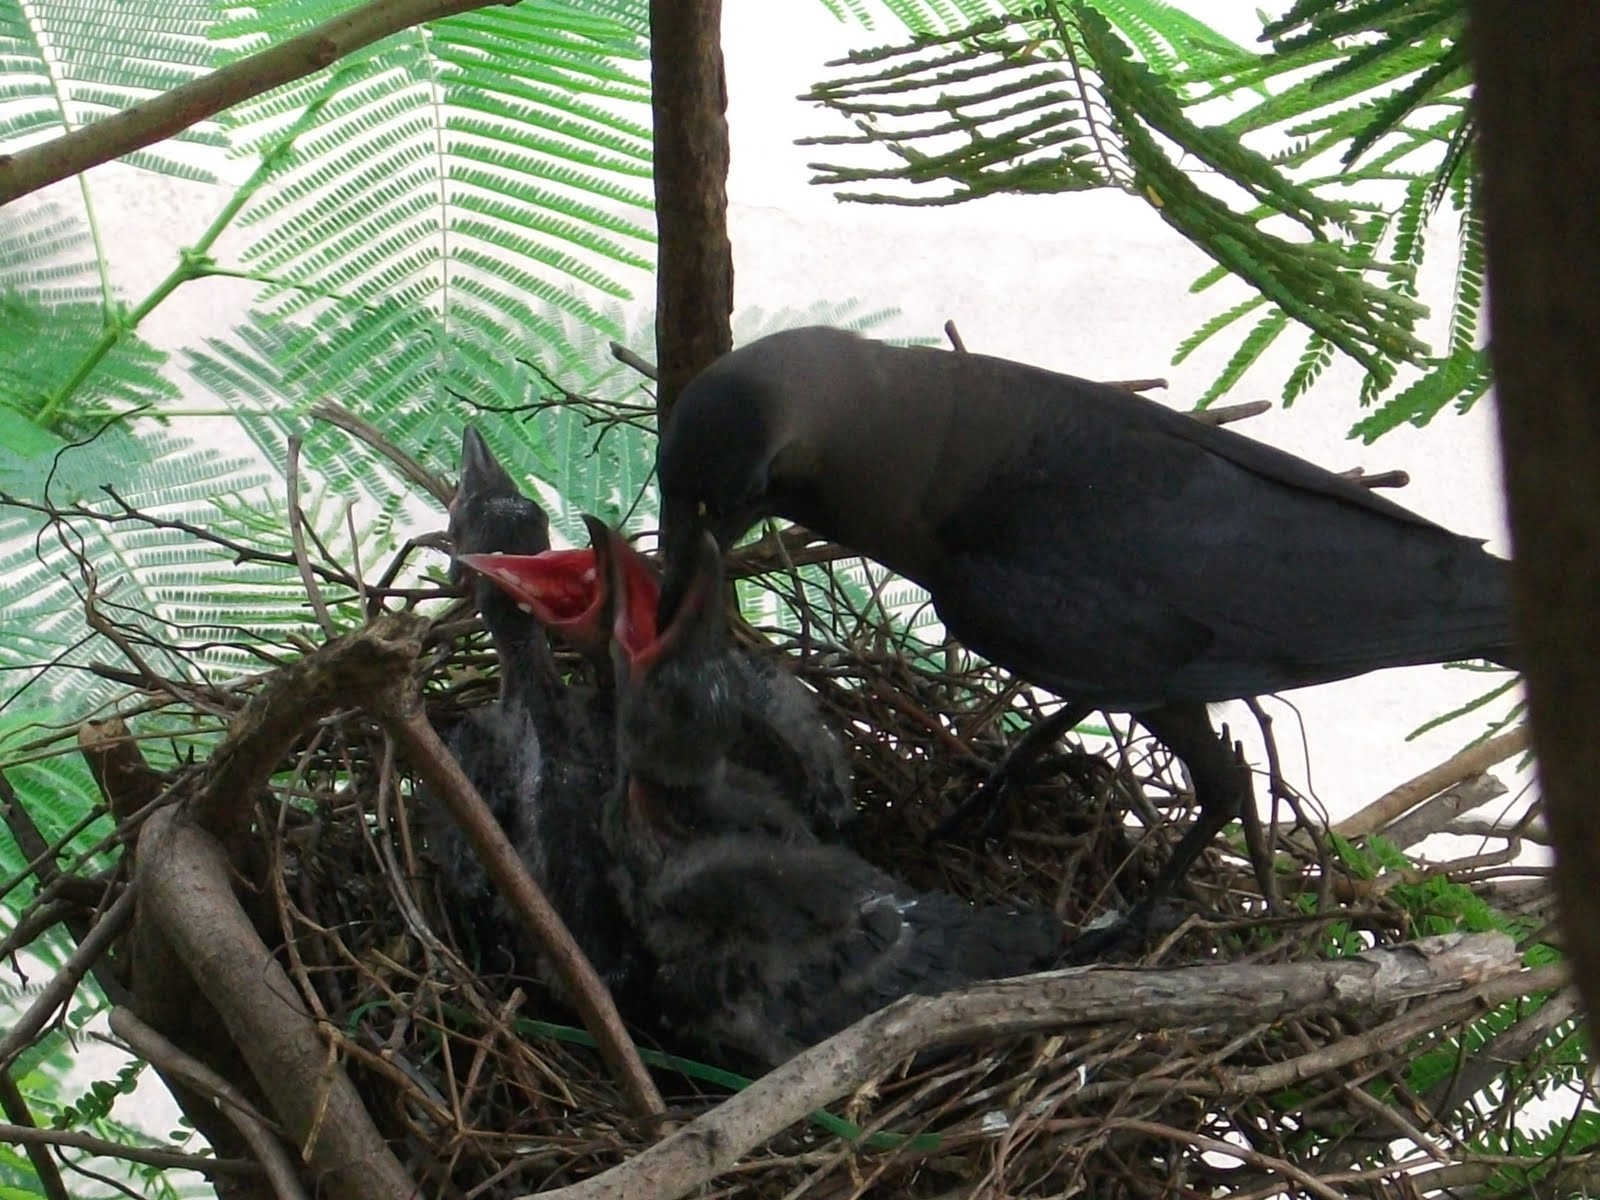 Crow feeding cuckoo chicks